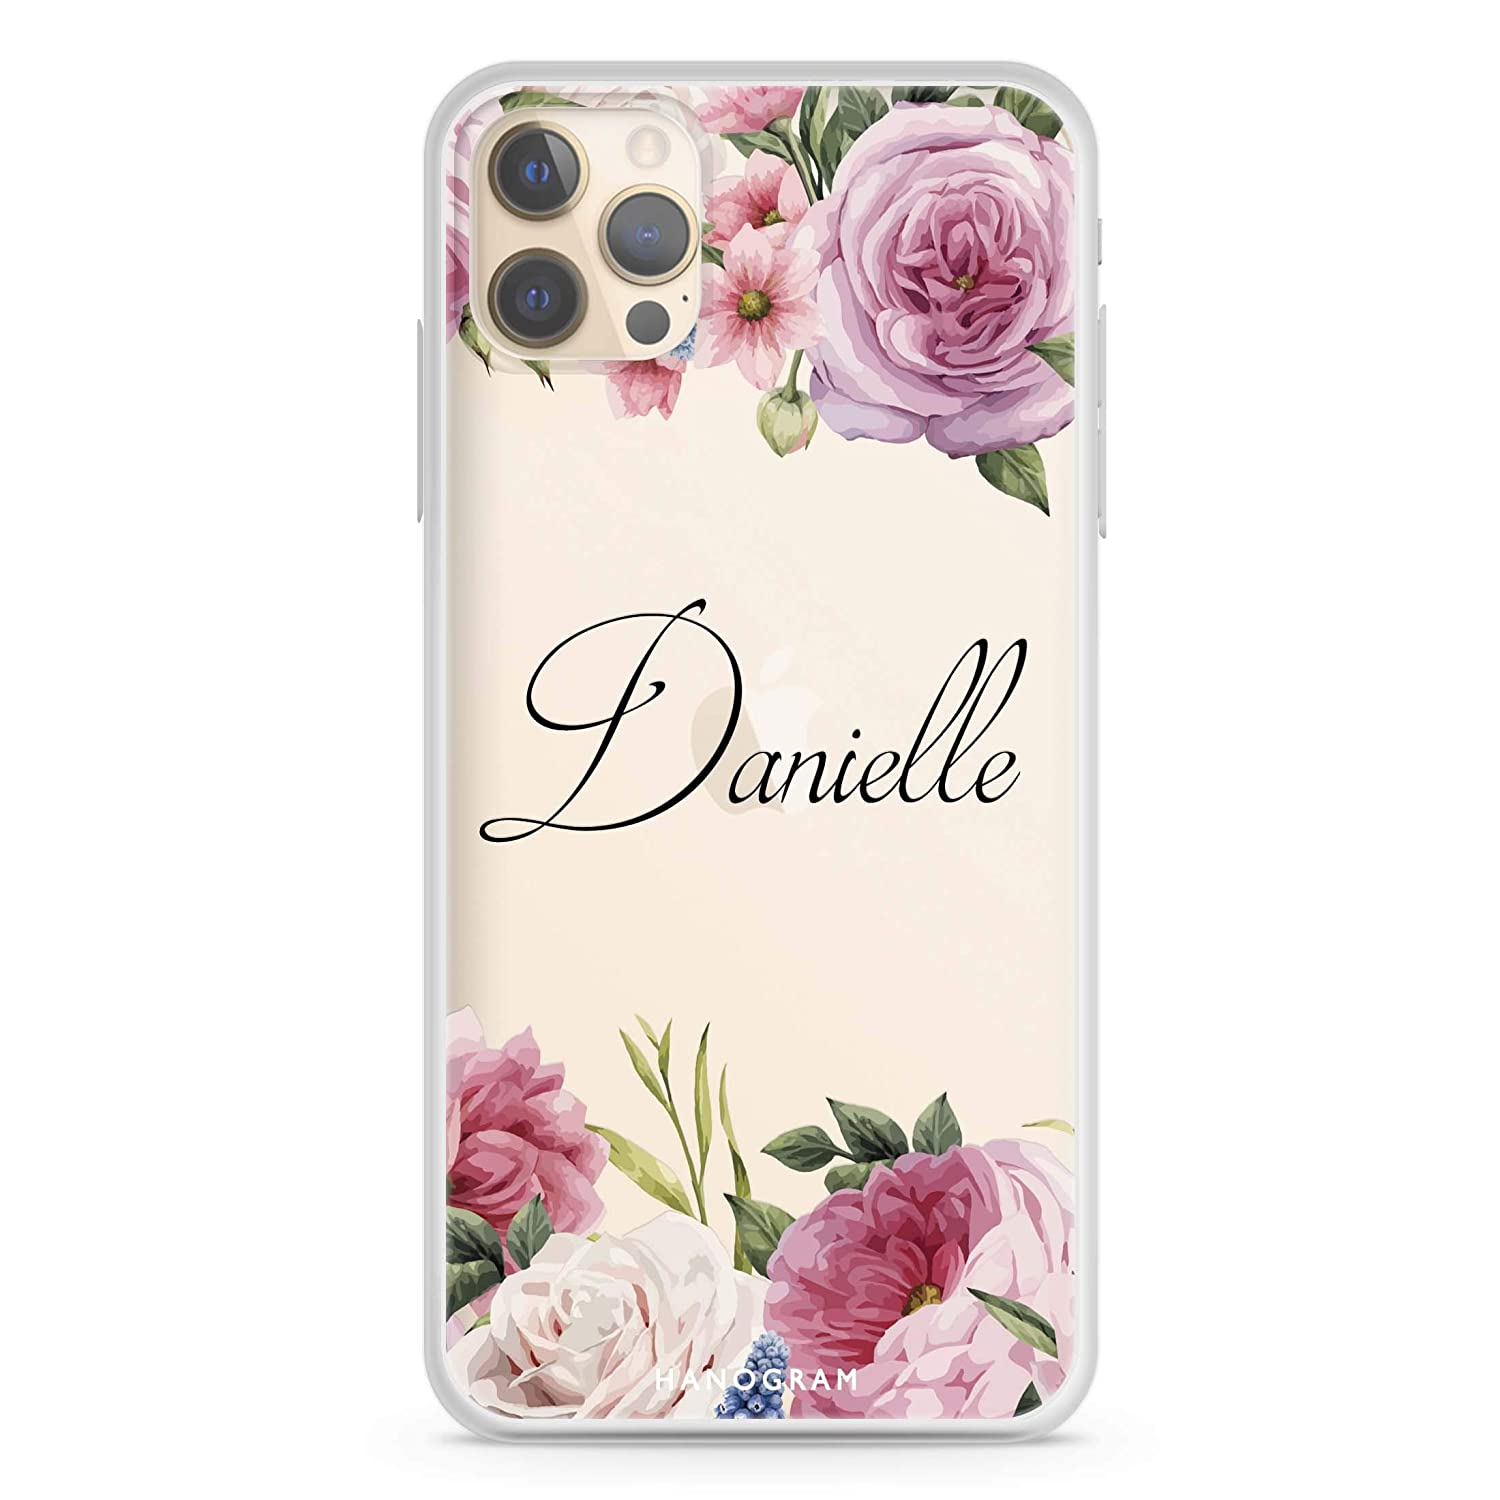 Fashion Light Pink Floral iPhone 12 Soft Case Pro Max New item Clear